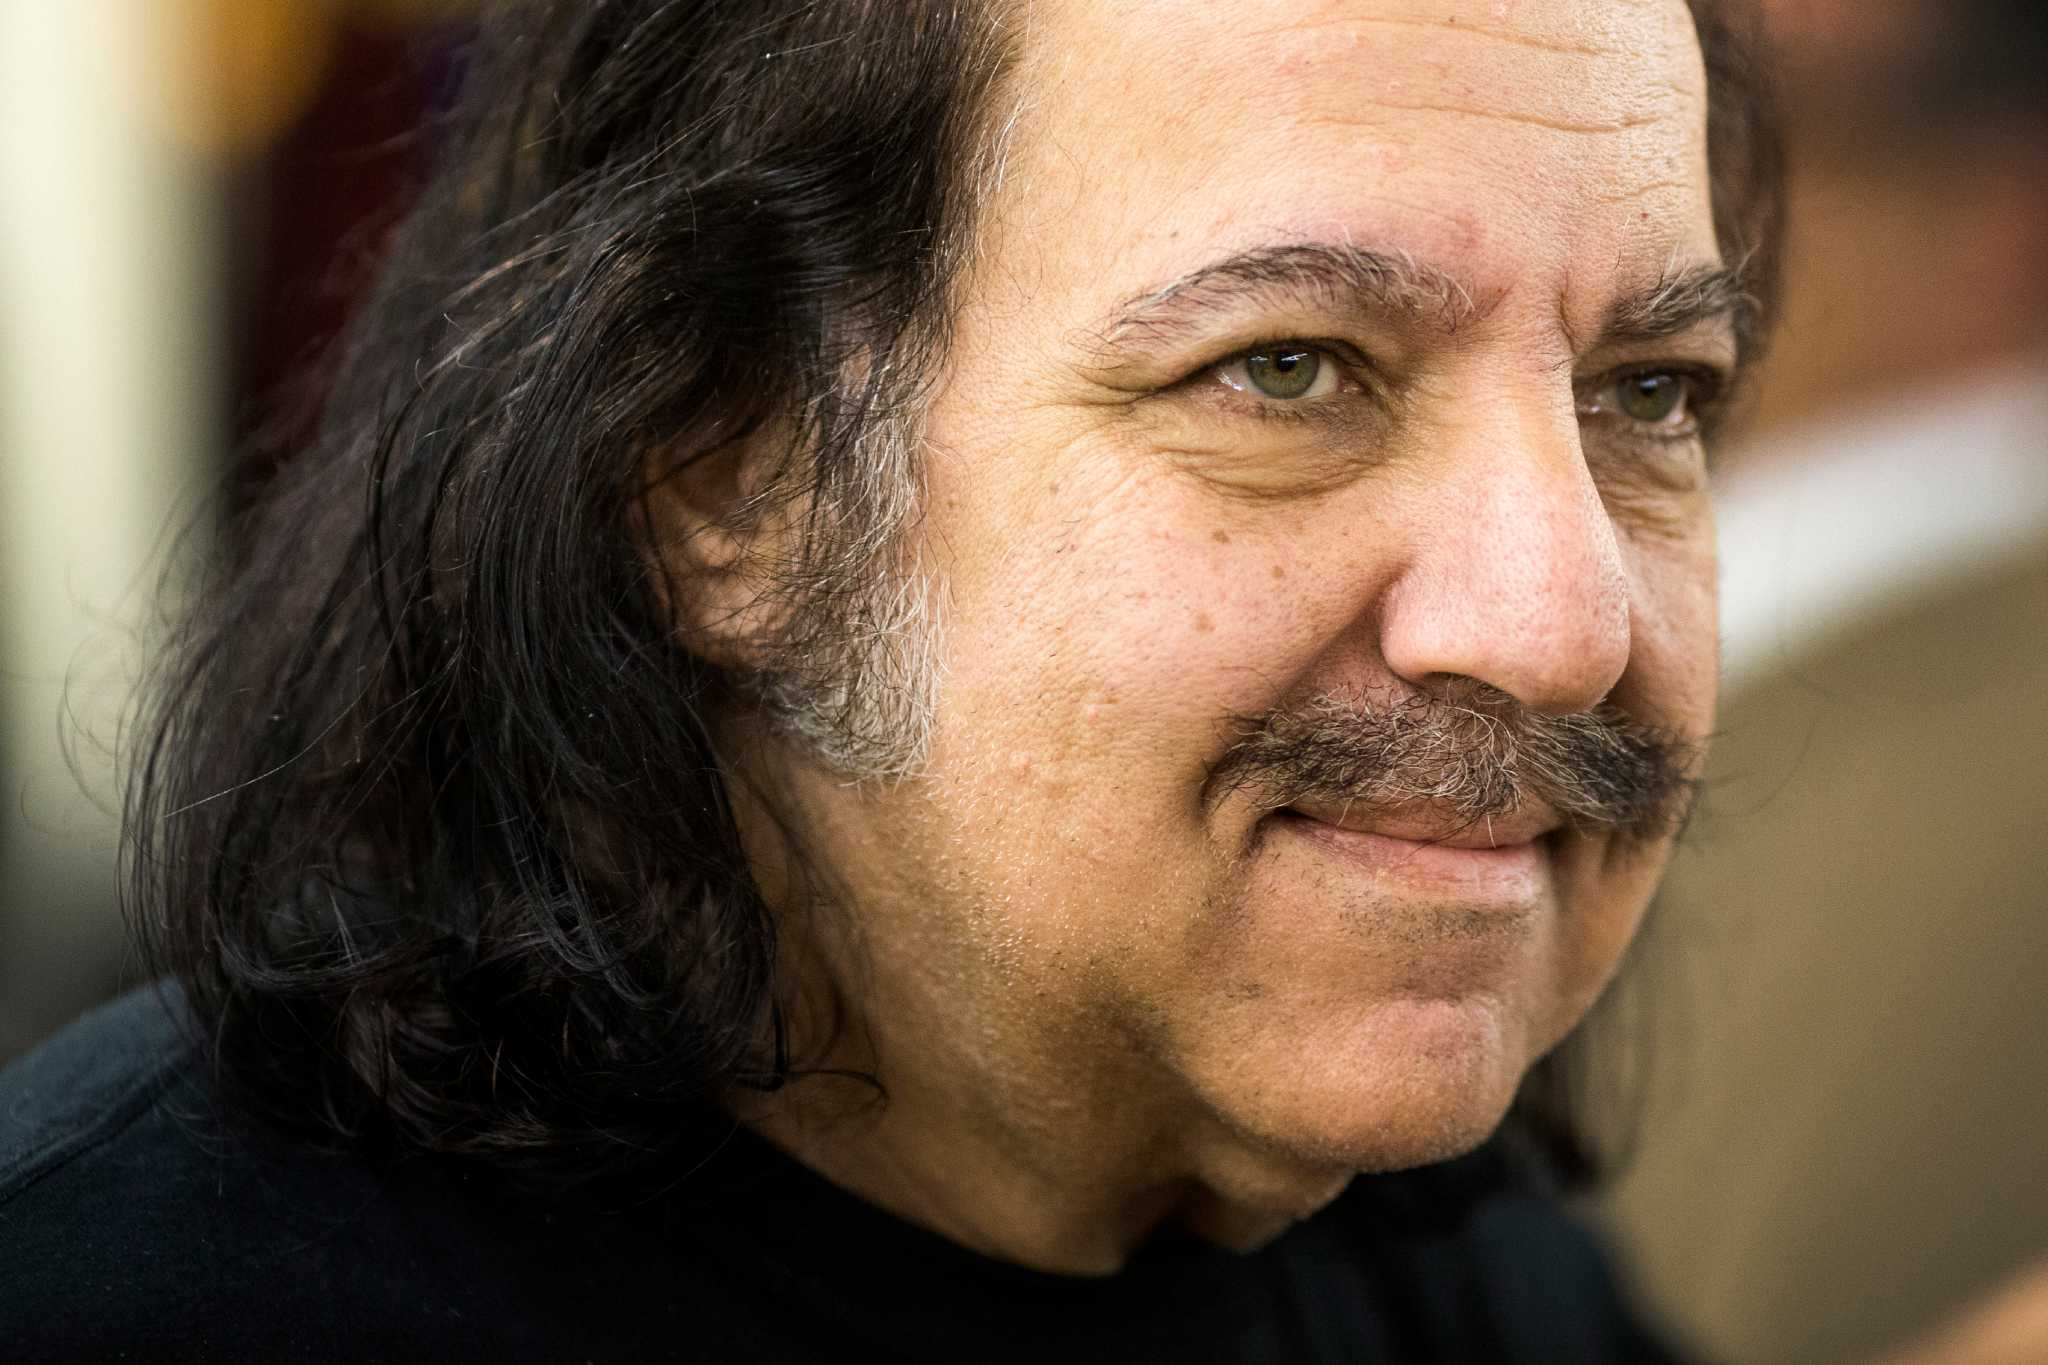 Tesla Canada Model 3 >> Model accuses Ron Jeremy of sexual assault in Tacoma - seattlepi.com